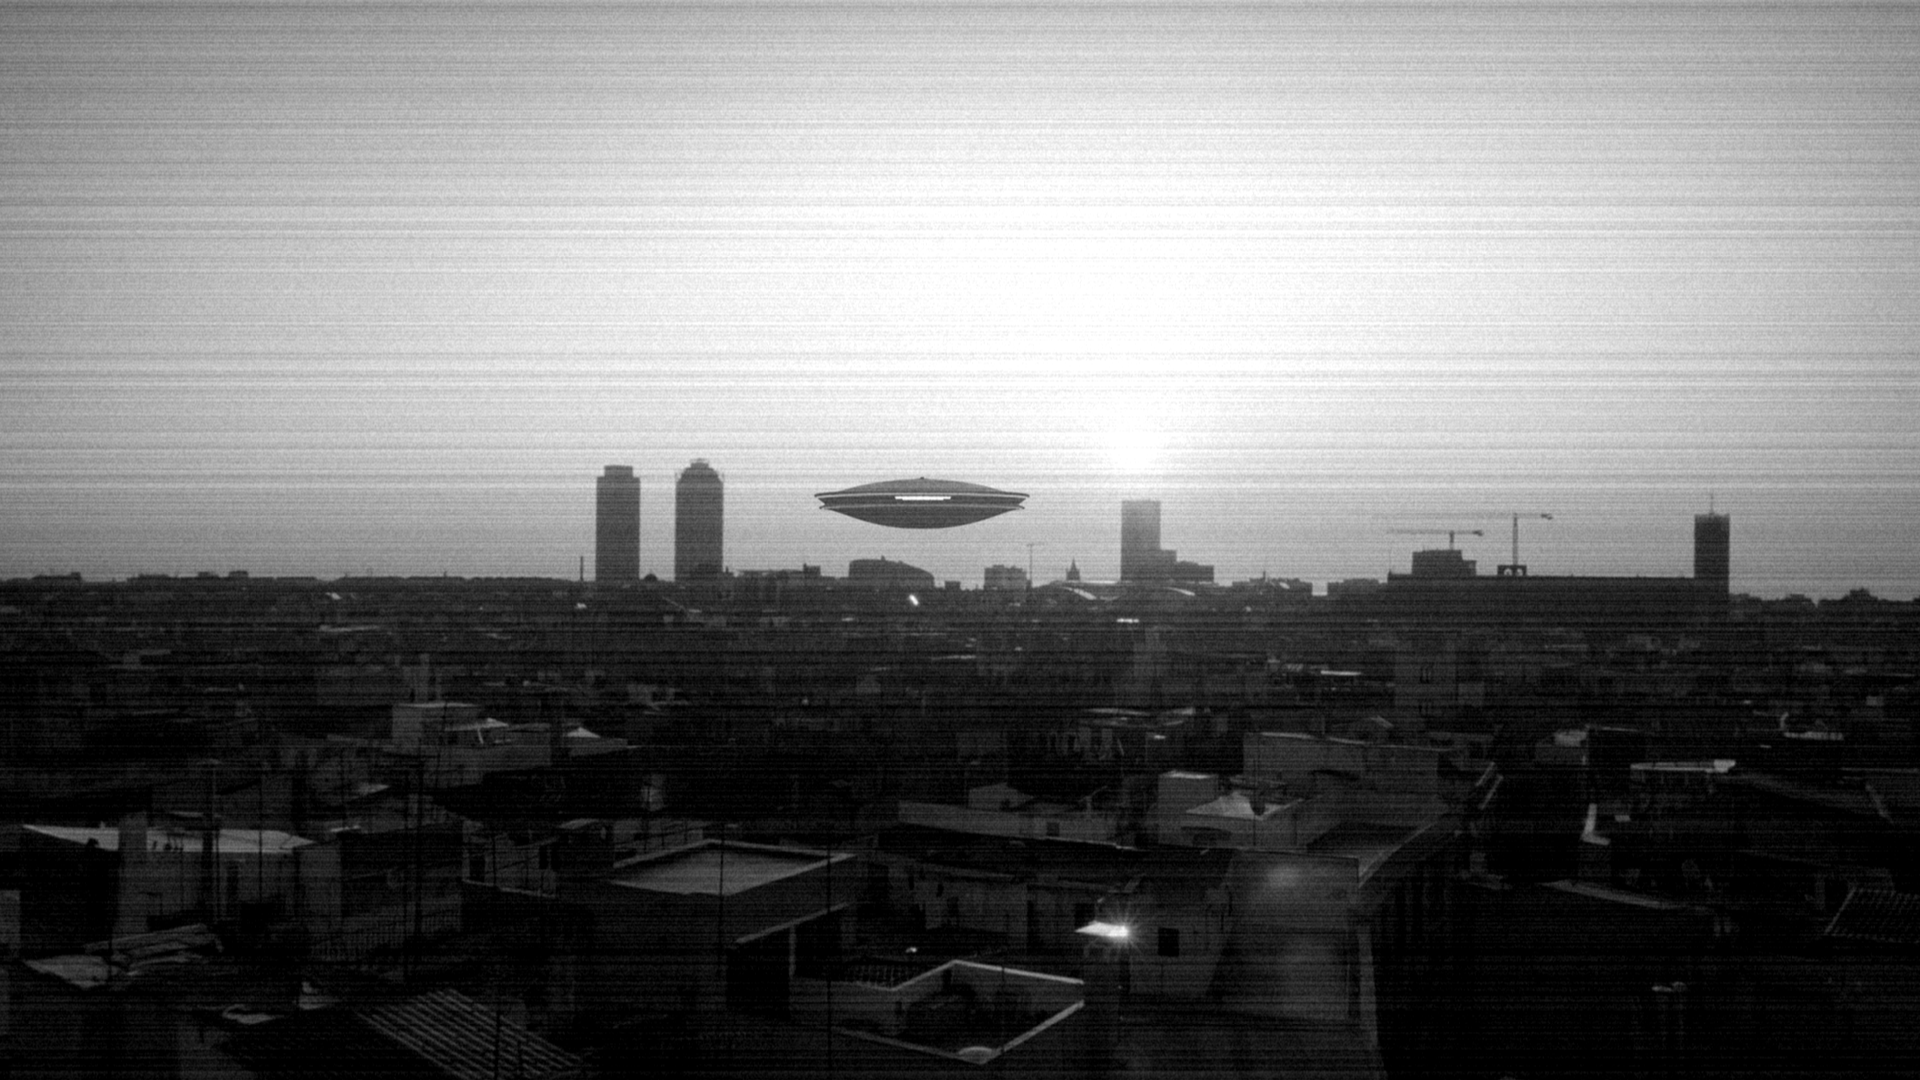 Ex-Pentagon Investigator Shares Shocking Details About UFOs Disabling American Nuclear Capability - BroBible